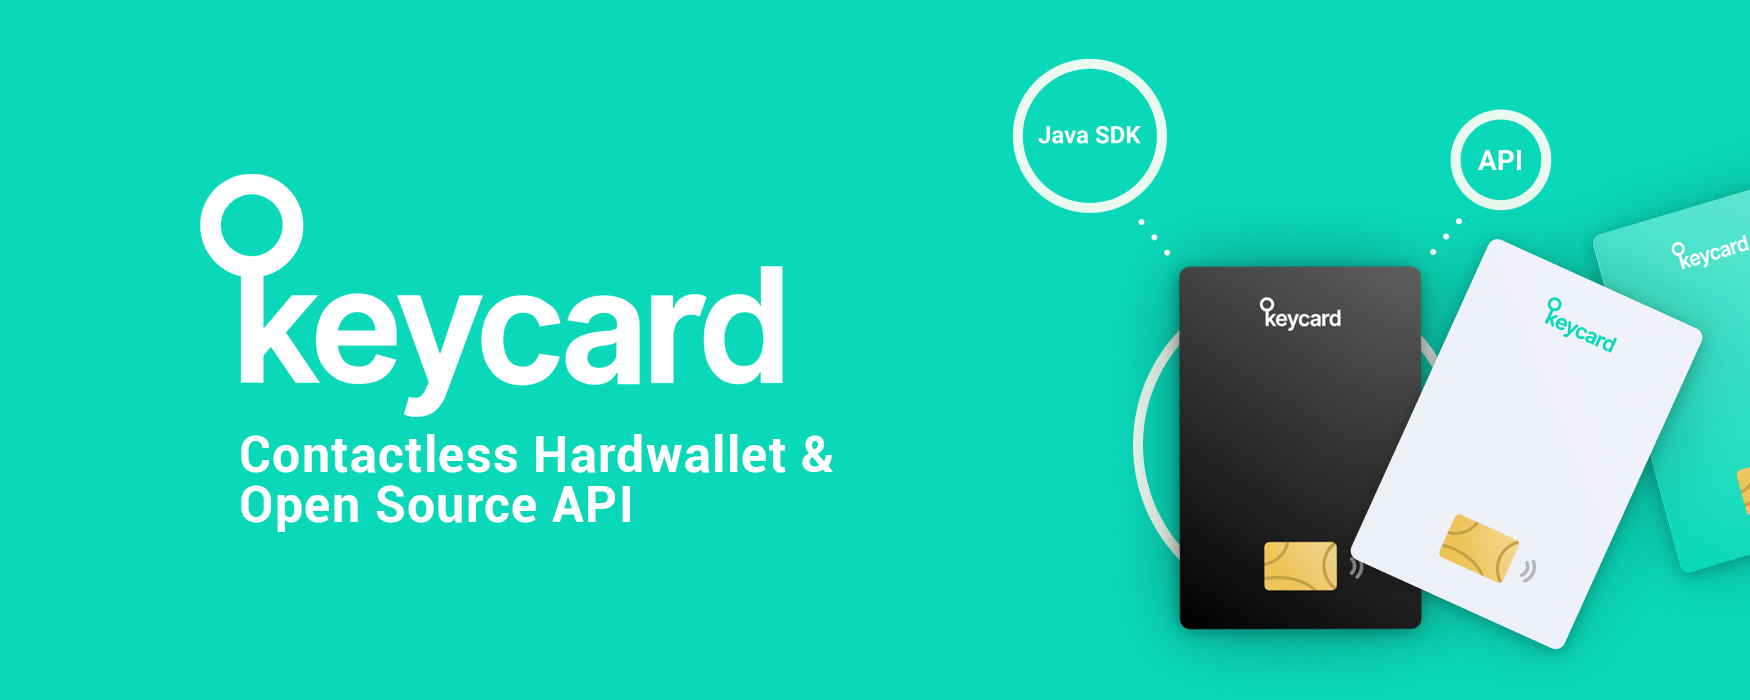 Introducing Keycard - The secure, contactless hardwallet & open source API